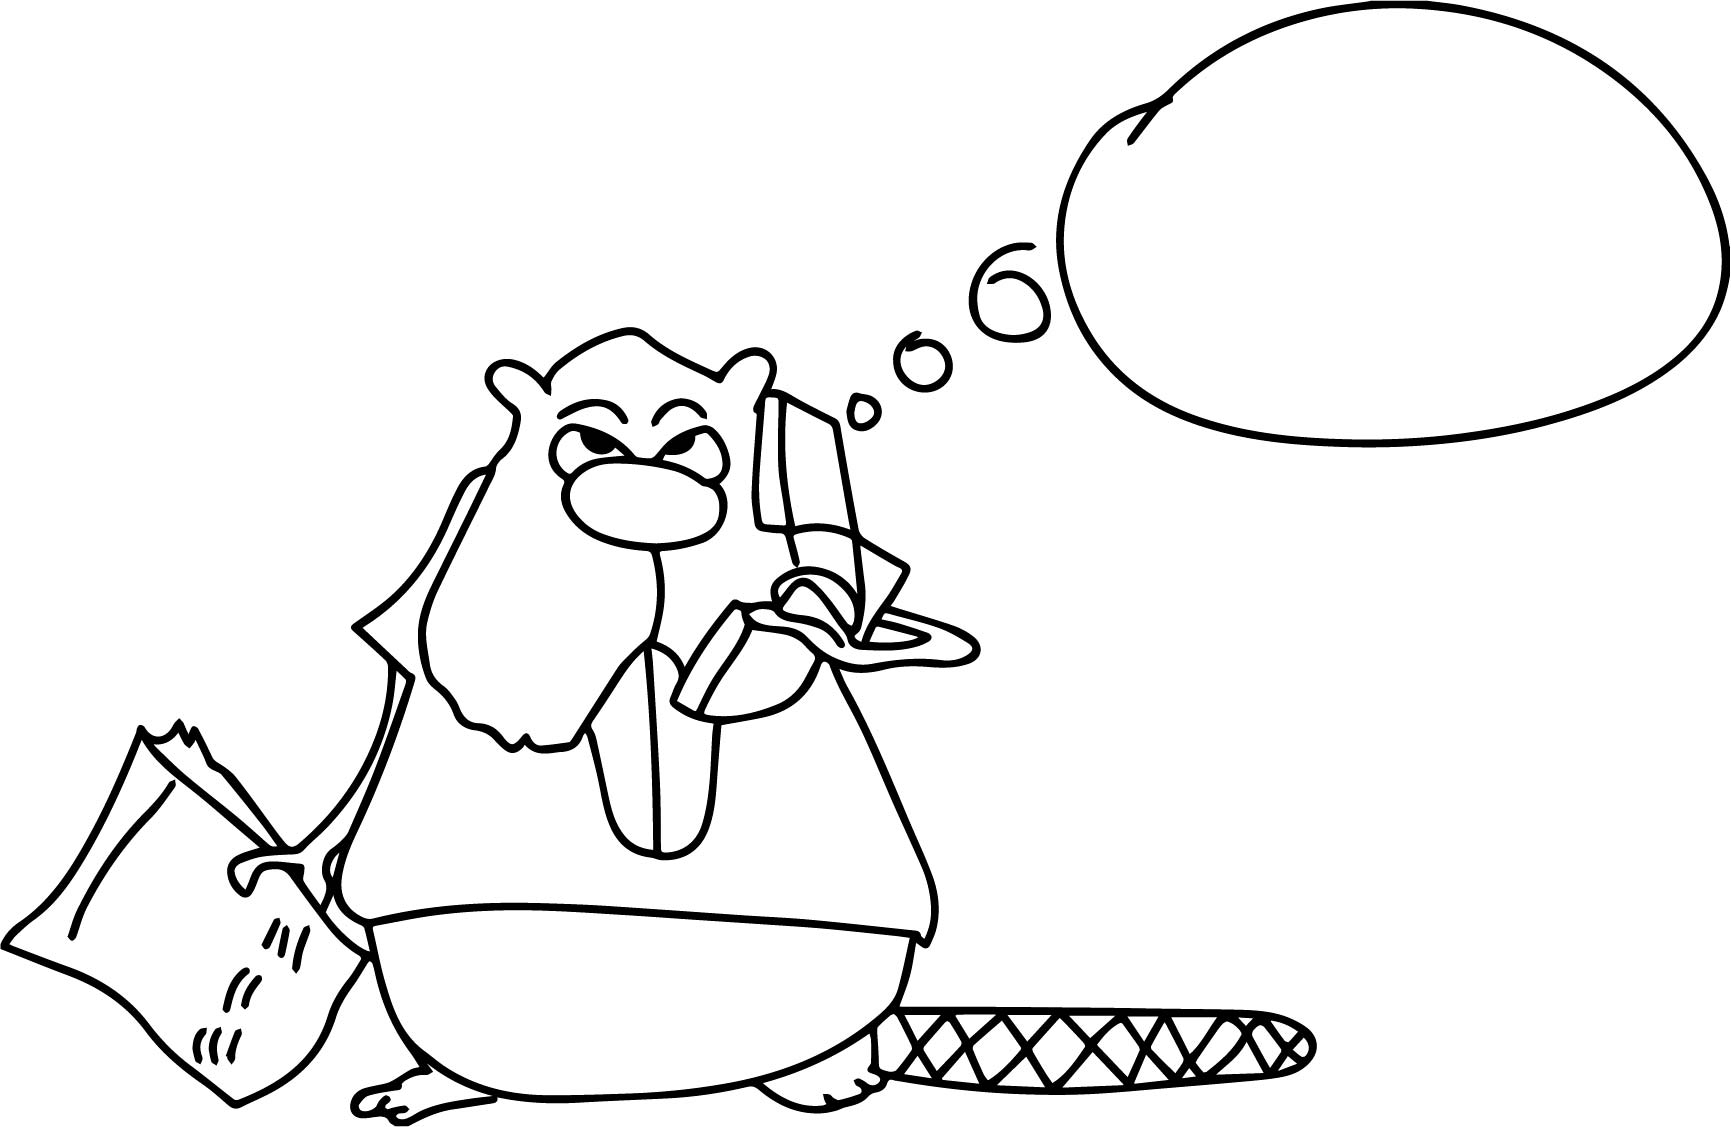 Canada Squirrel Telephone Coloring Page